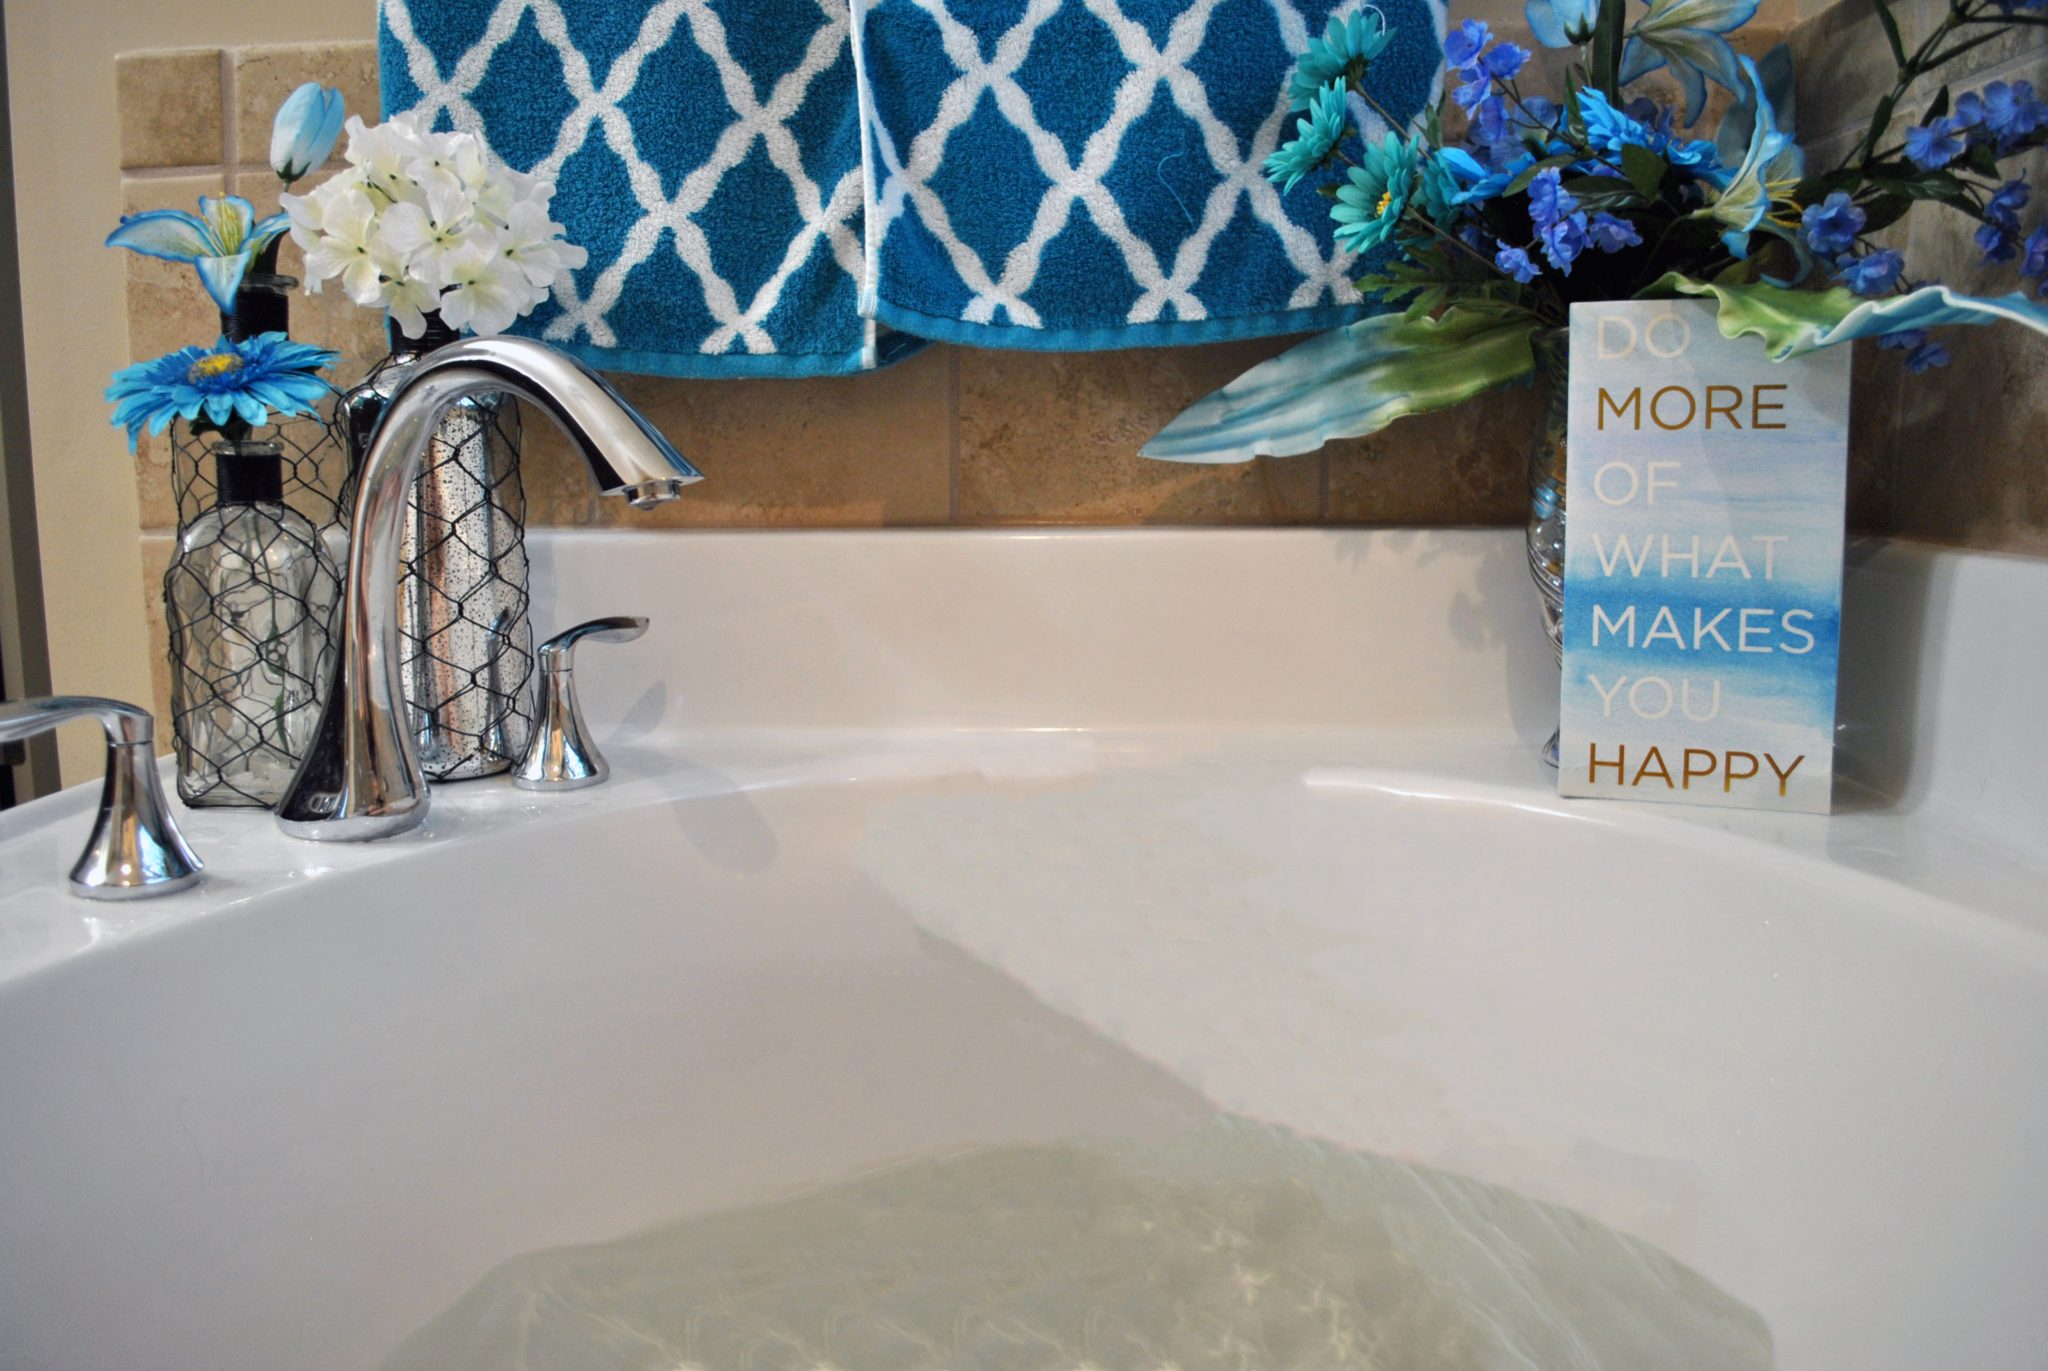 Tips for Making Bathroom Remodeling Less Stressful-less-stress-bathroom-remodel